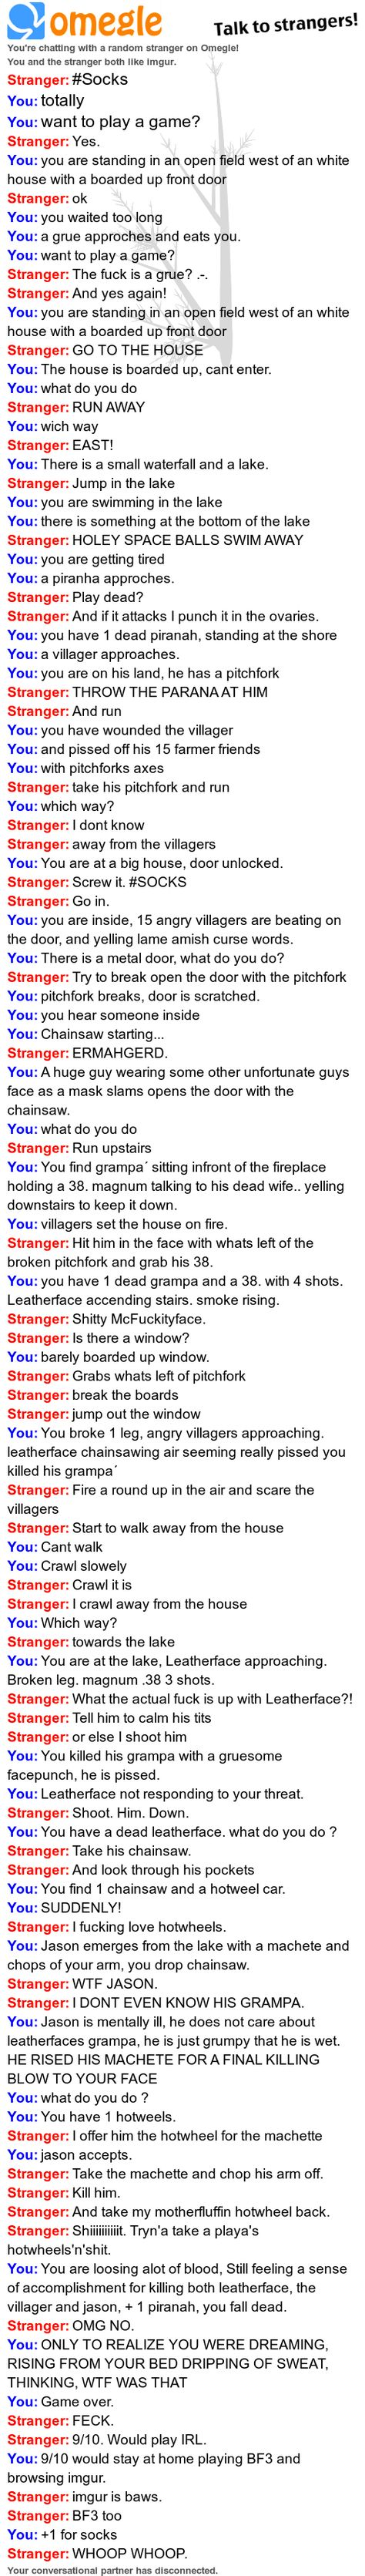 Hot chat omegle Welcome to